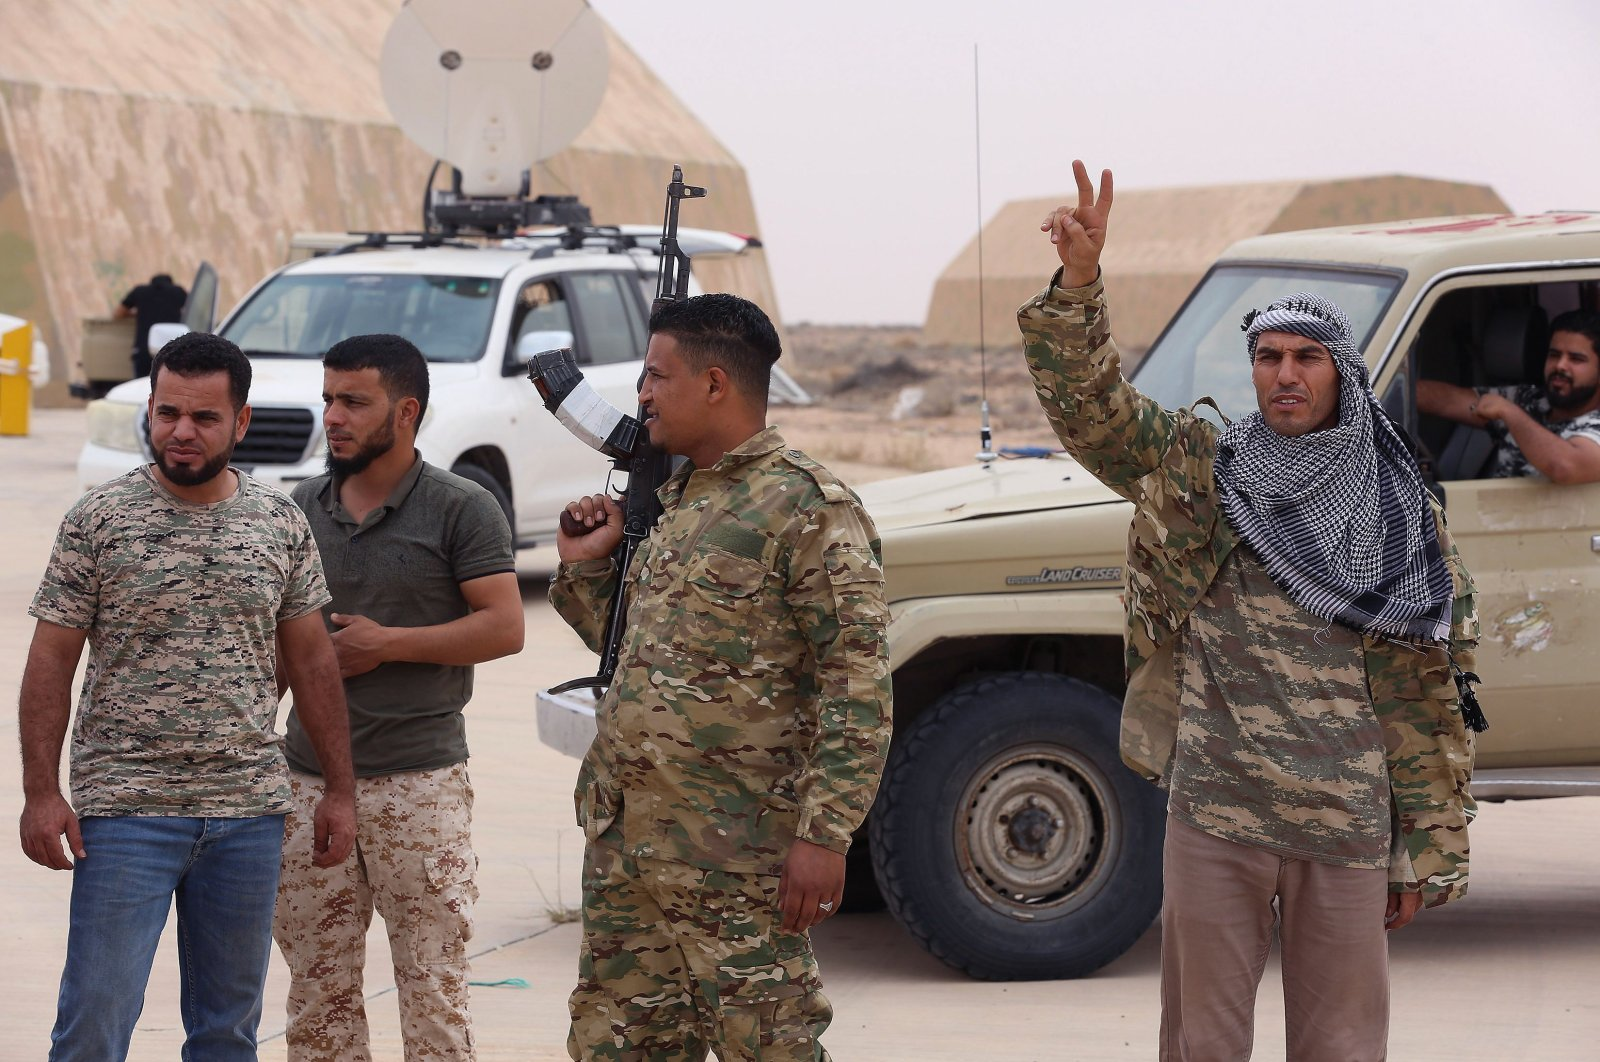 Fighters loyal to Libya's U.N.-recognized Government of National Accord (GNA) stand outside a hangar at al-Watiya airbase, May 18, 2020. (AFP Photo)